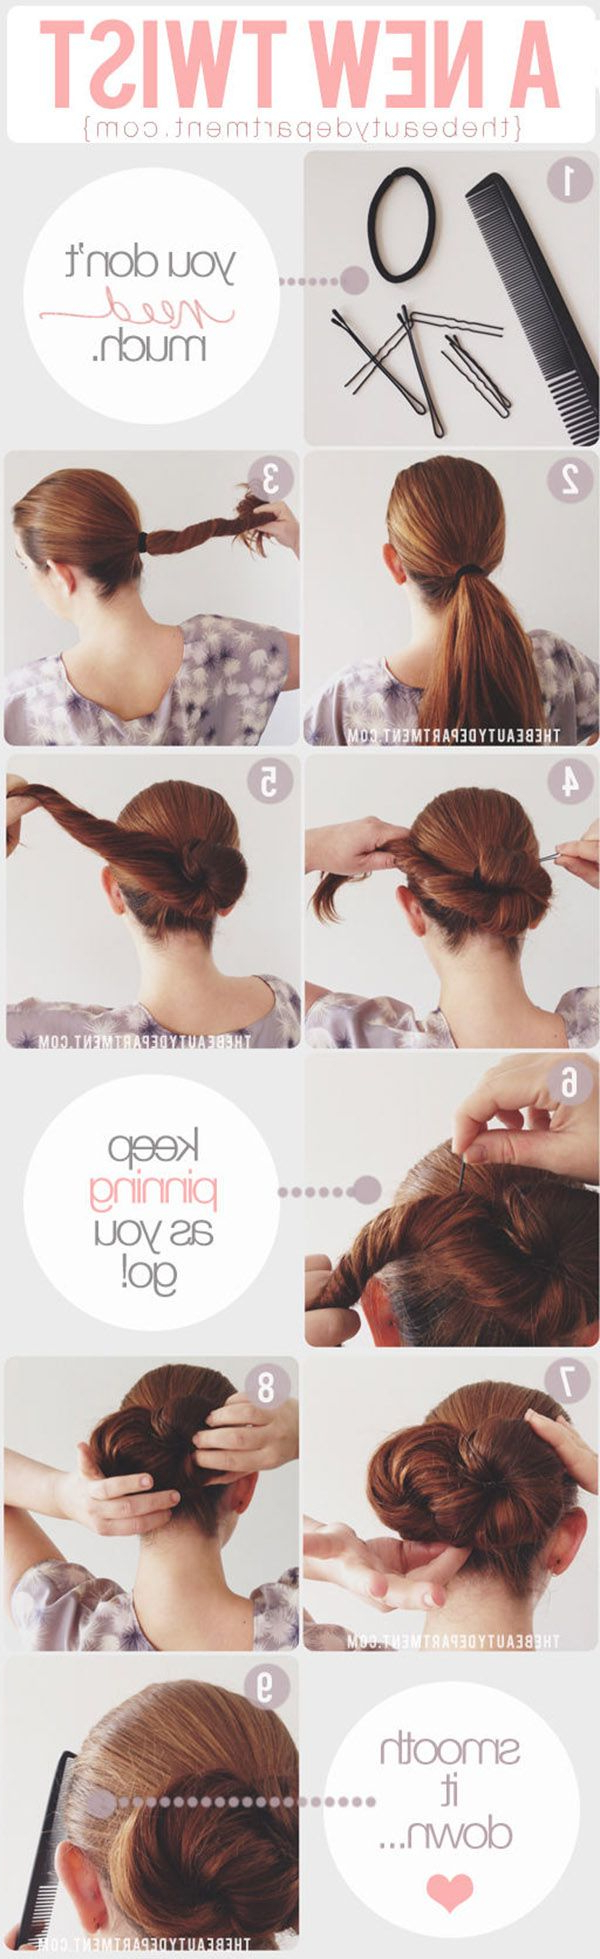 20 Diy Wedding Hairstyles With Tutorials To Try On Your Own (View 1 of 20)